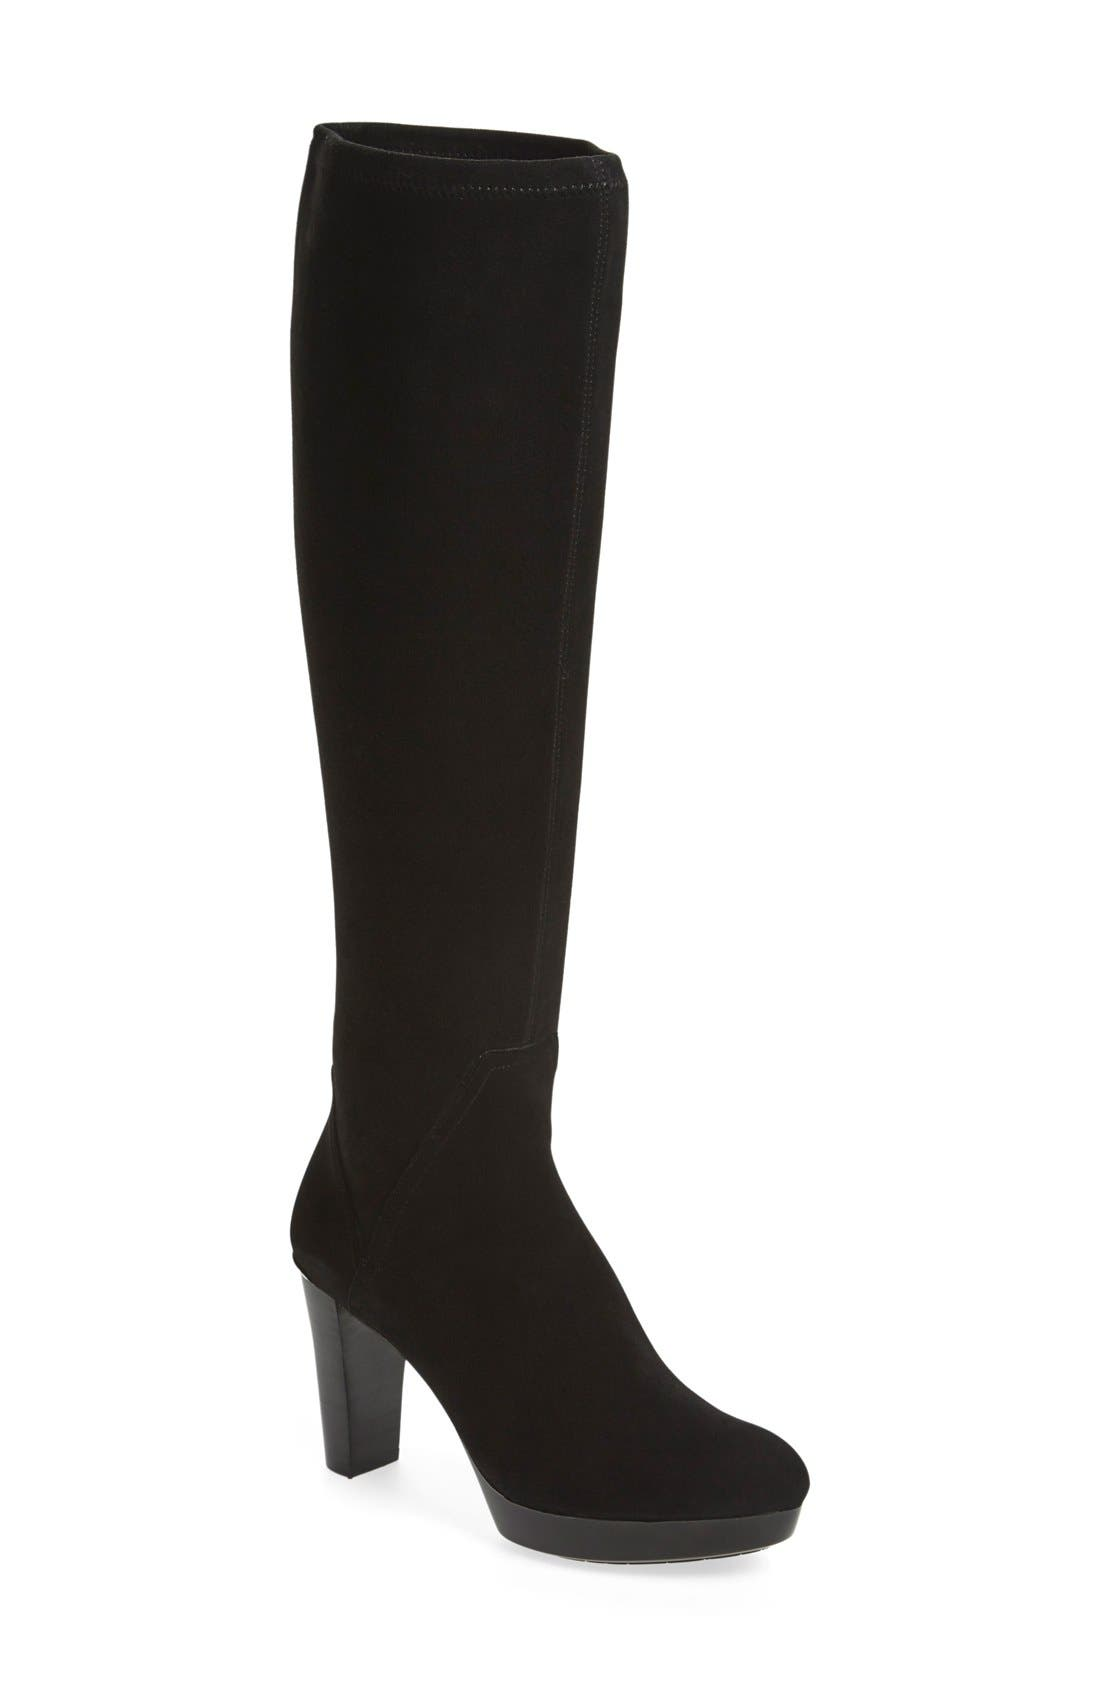 Main Image - Donald J Pliner 'Echoe' Stretch Suede Tall Boot (Women)